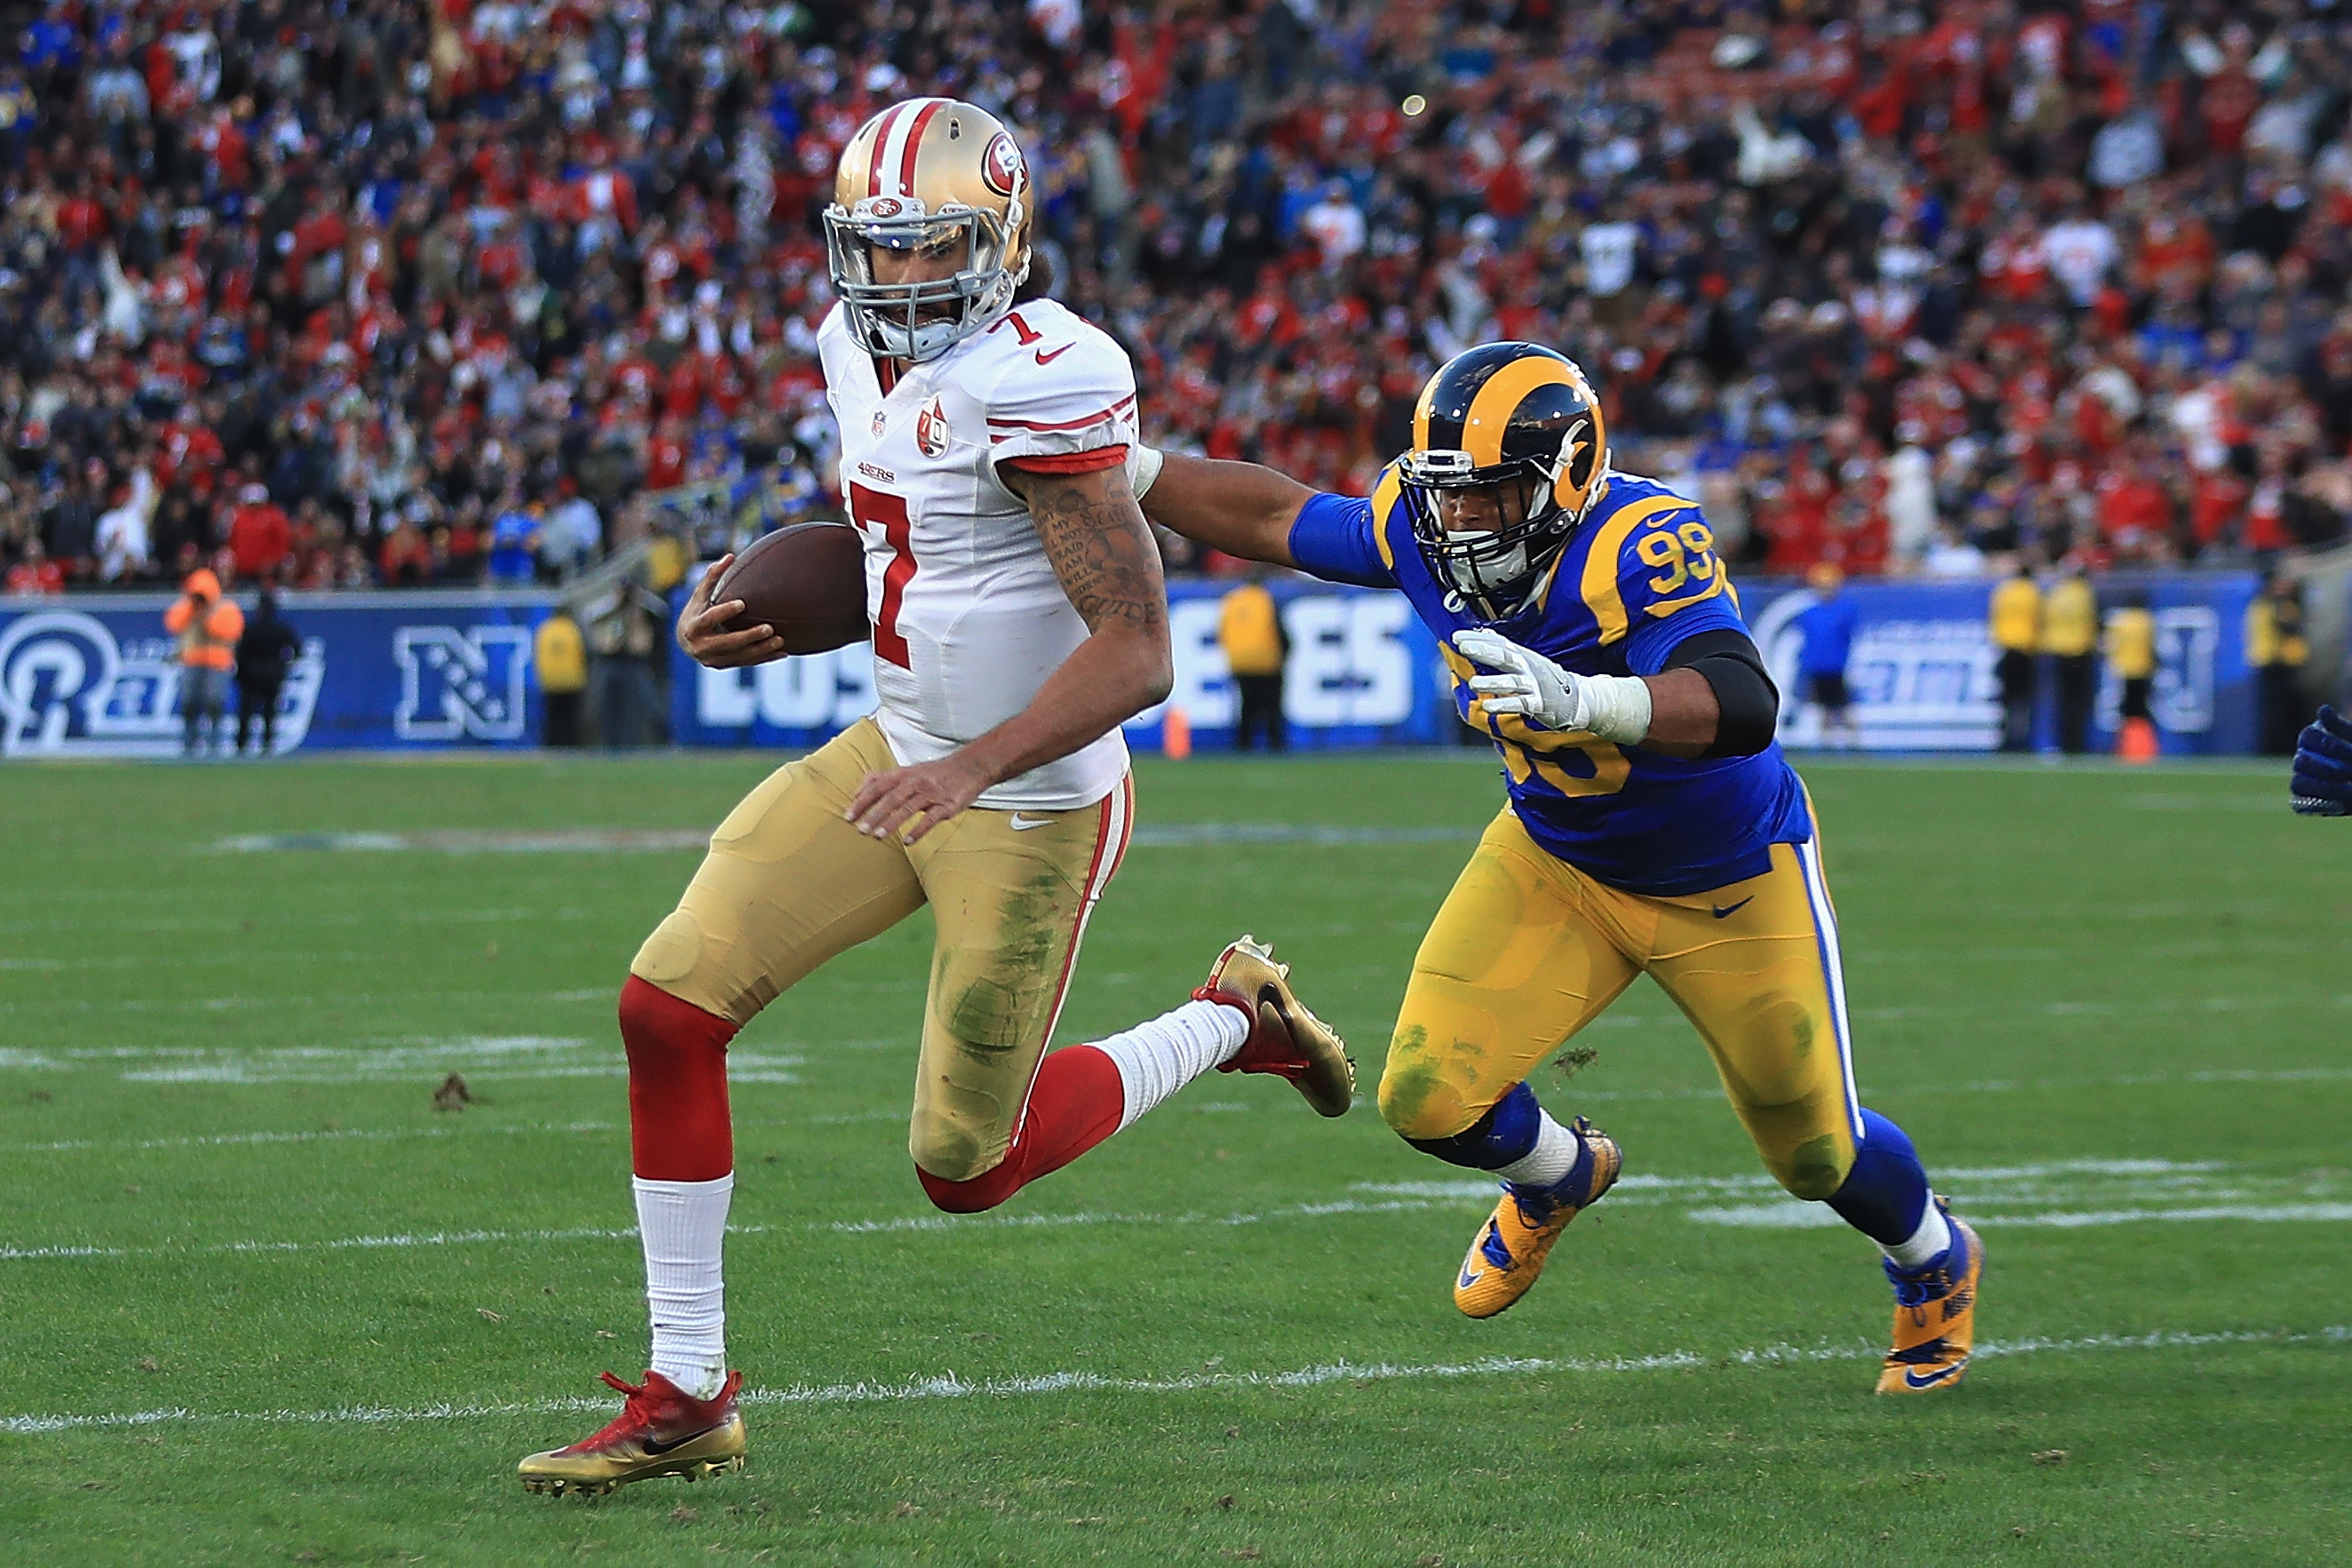 Colin Kaepernick won't be in the Denver Broncos' plans says one former player.